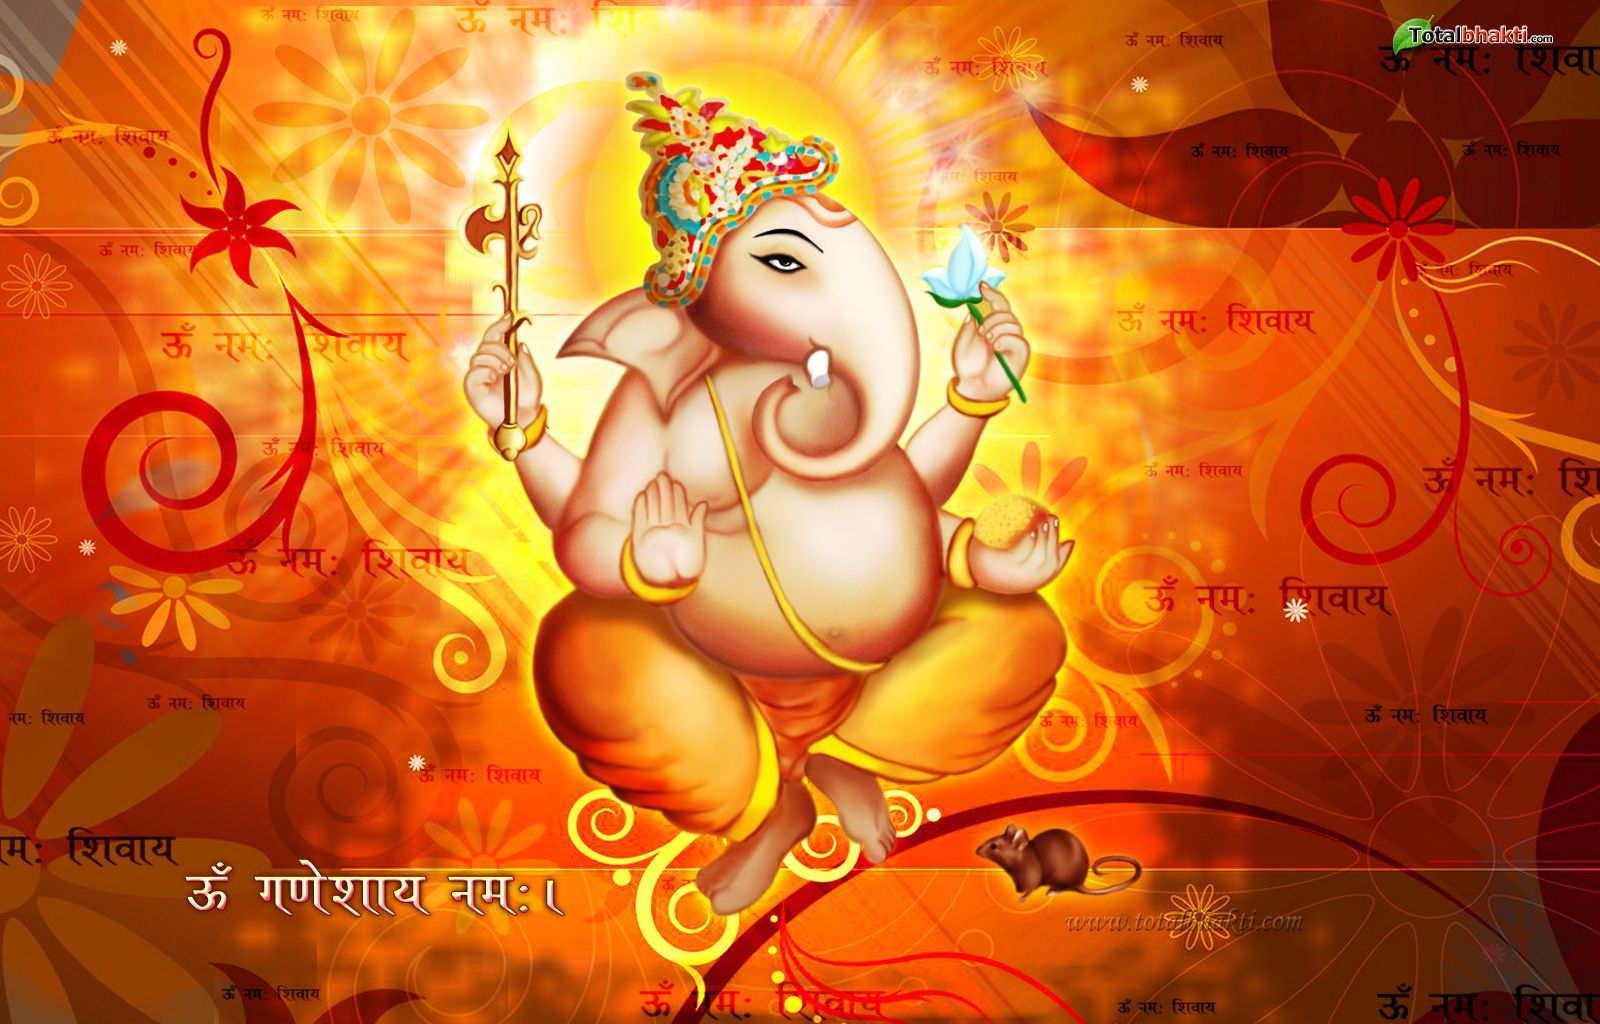 Wallpaper download ganesh - Festivals Wallpaper Hindu Wallpaper Lord Ganesha Wallpaper Orange Red And Yellow Color